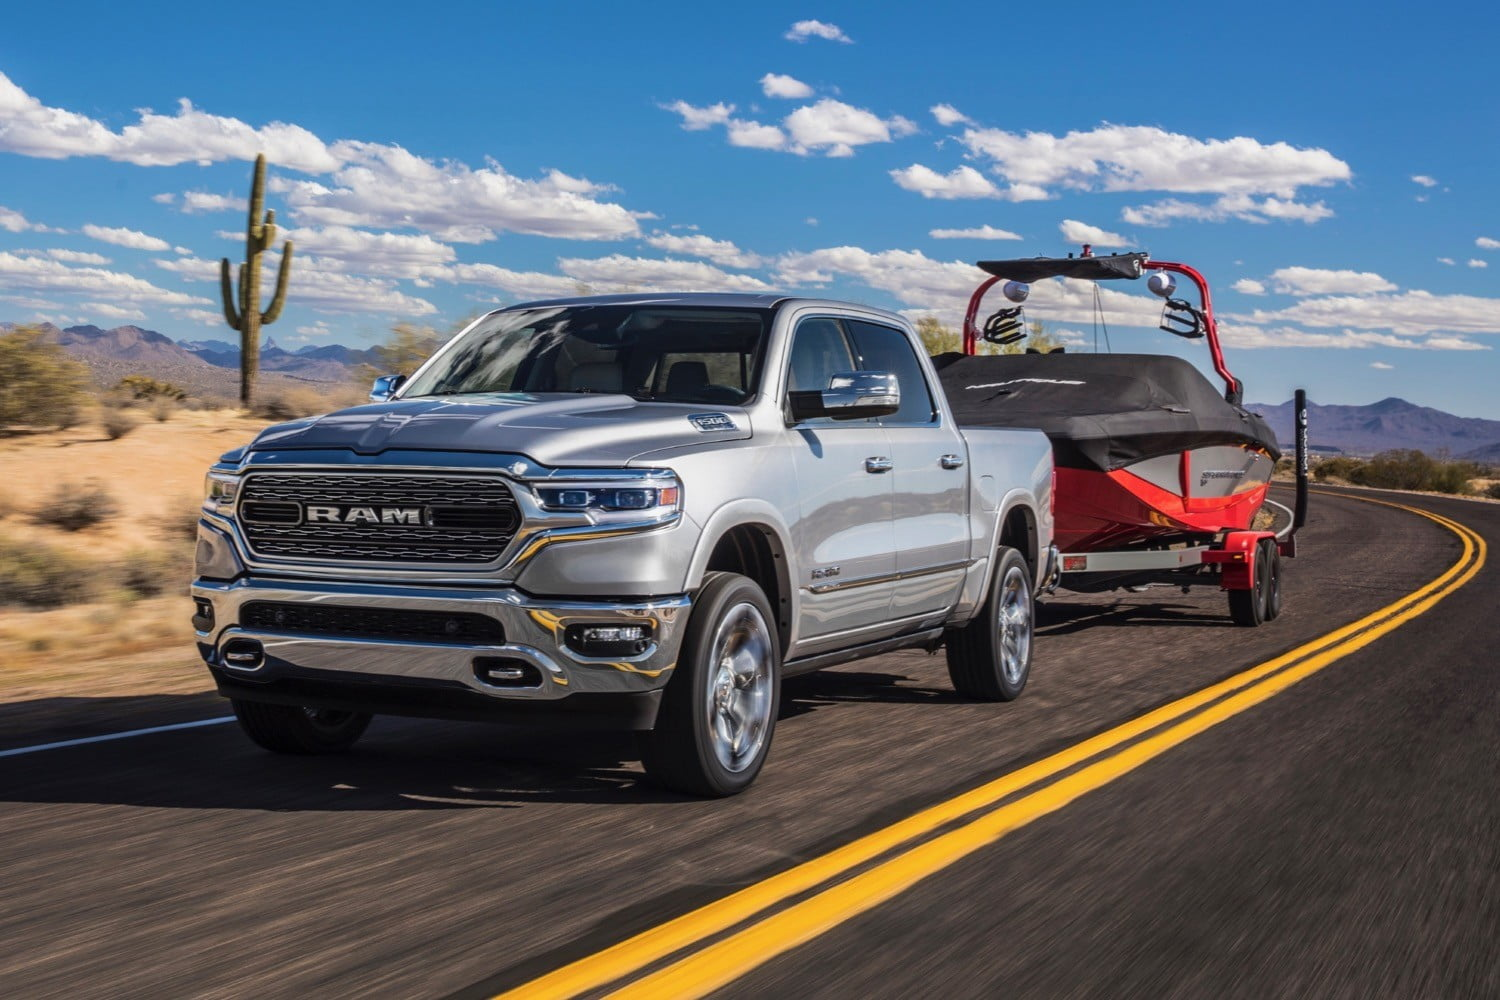 Awesome Customization Ideas For Your Truck in 2021